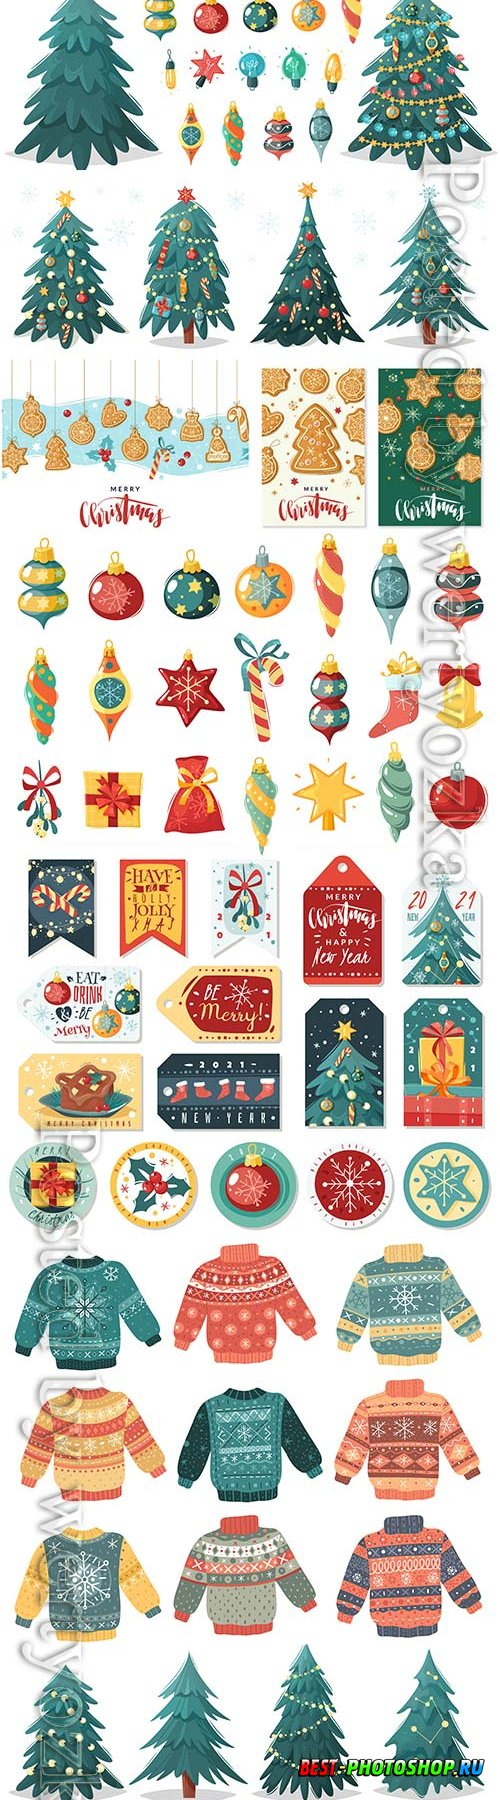 Christmas cartoon illustration, christmas tree with gifts in vector